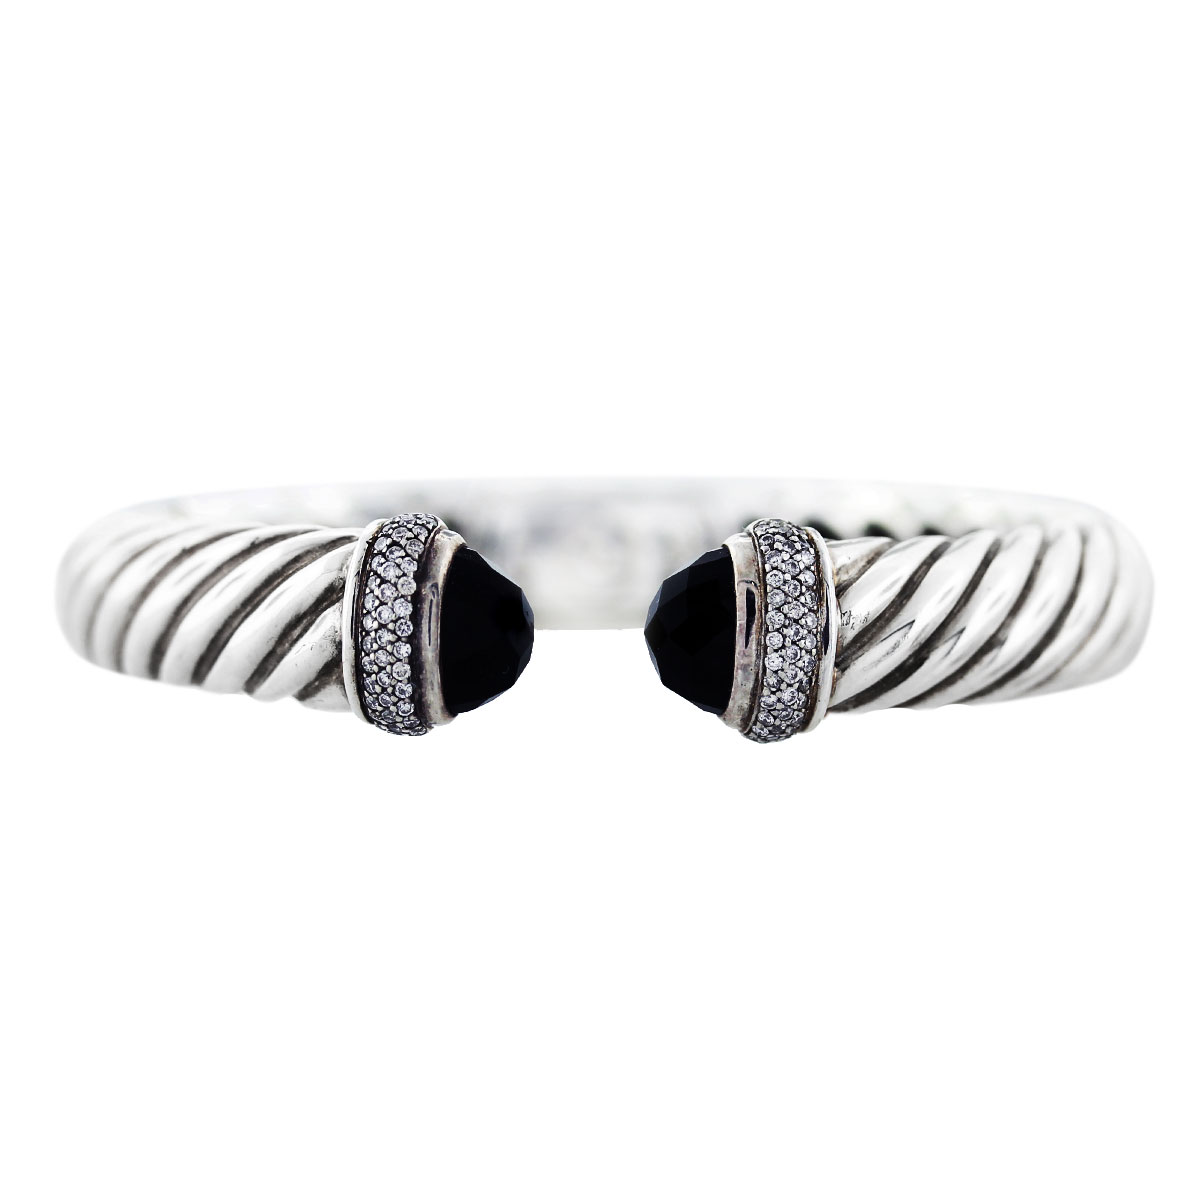 David yurman black onyx and diamond waverly cable bracelet for David yurman like bracelets